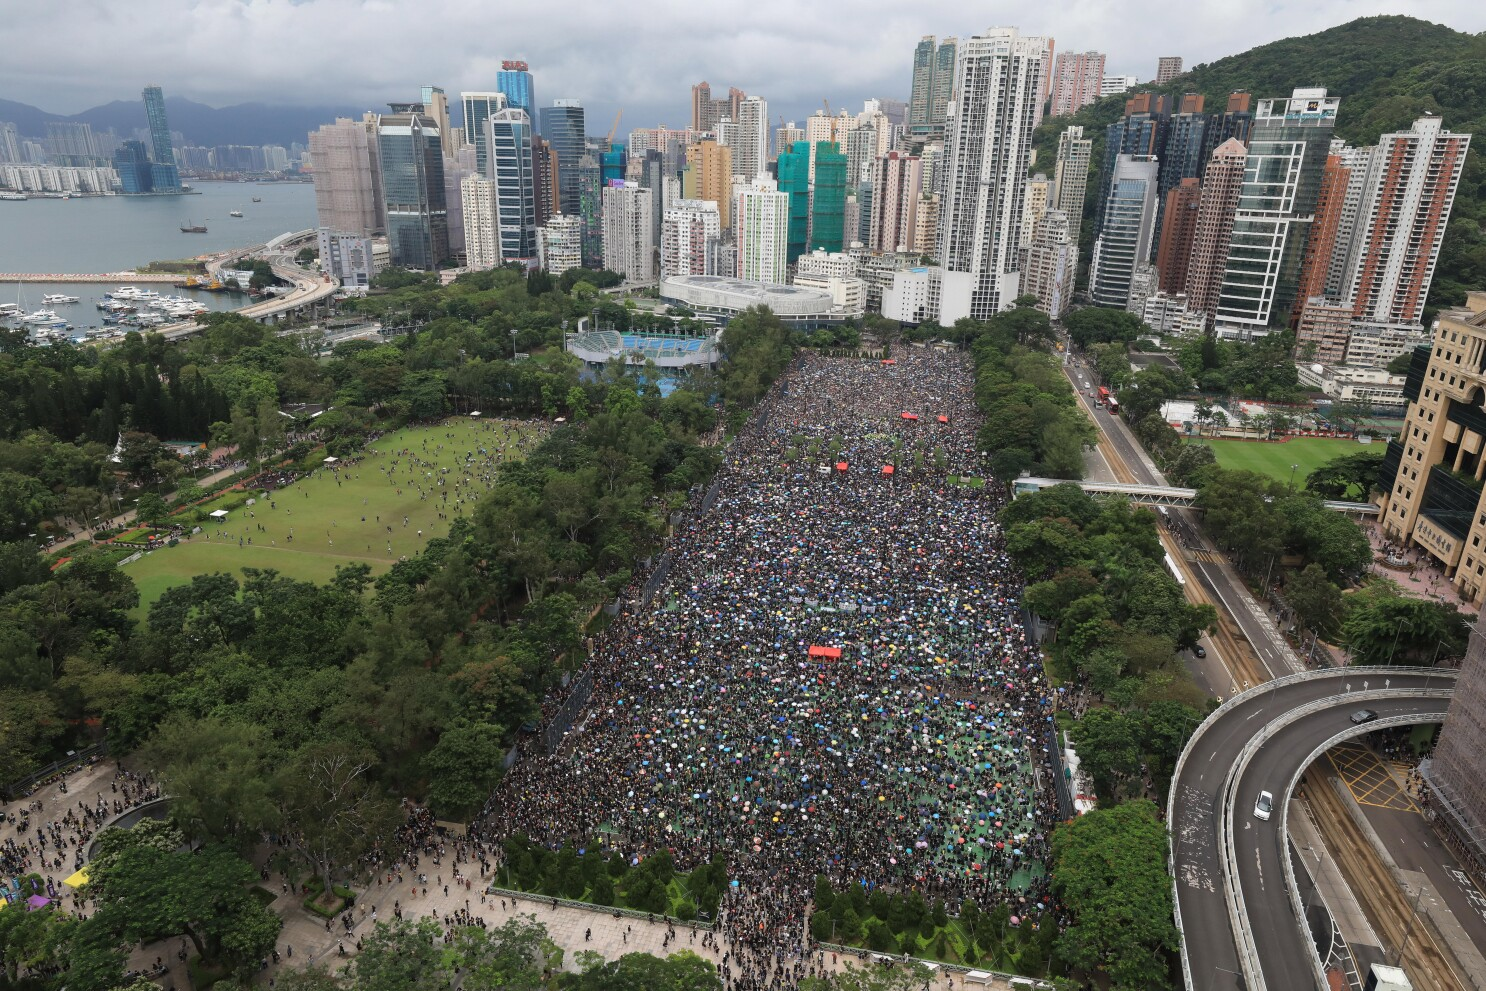 Hong Kong protests continue as organizers call for peaceful rally